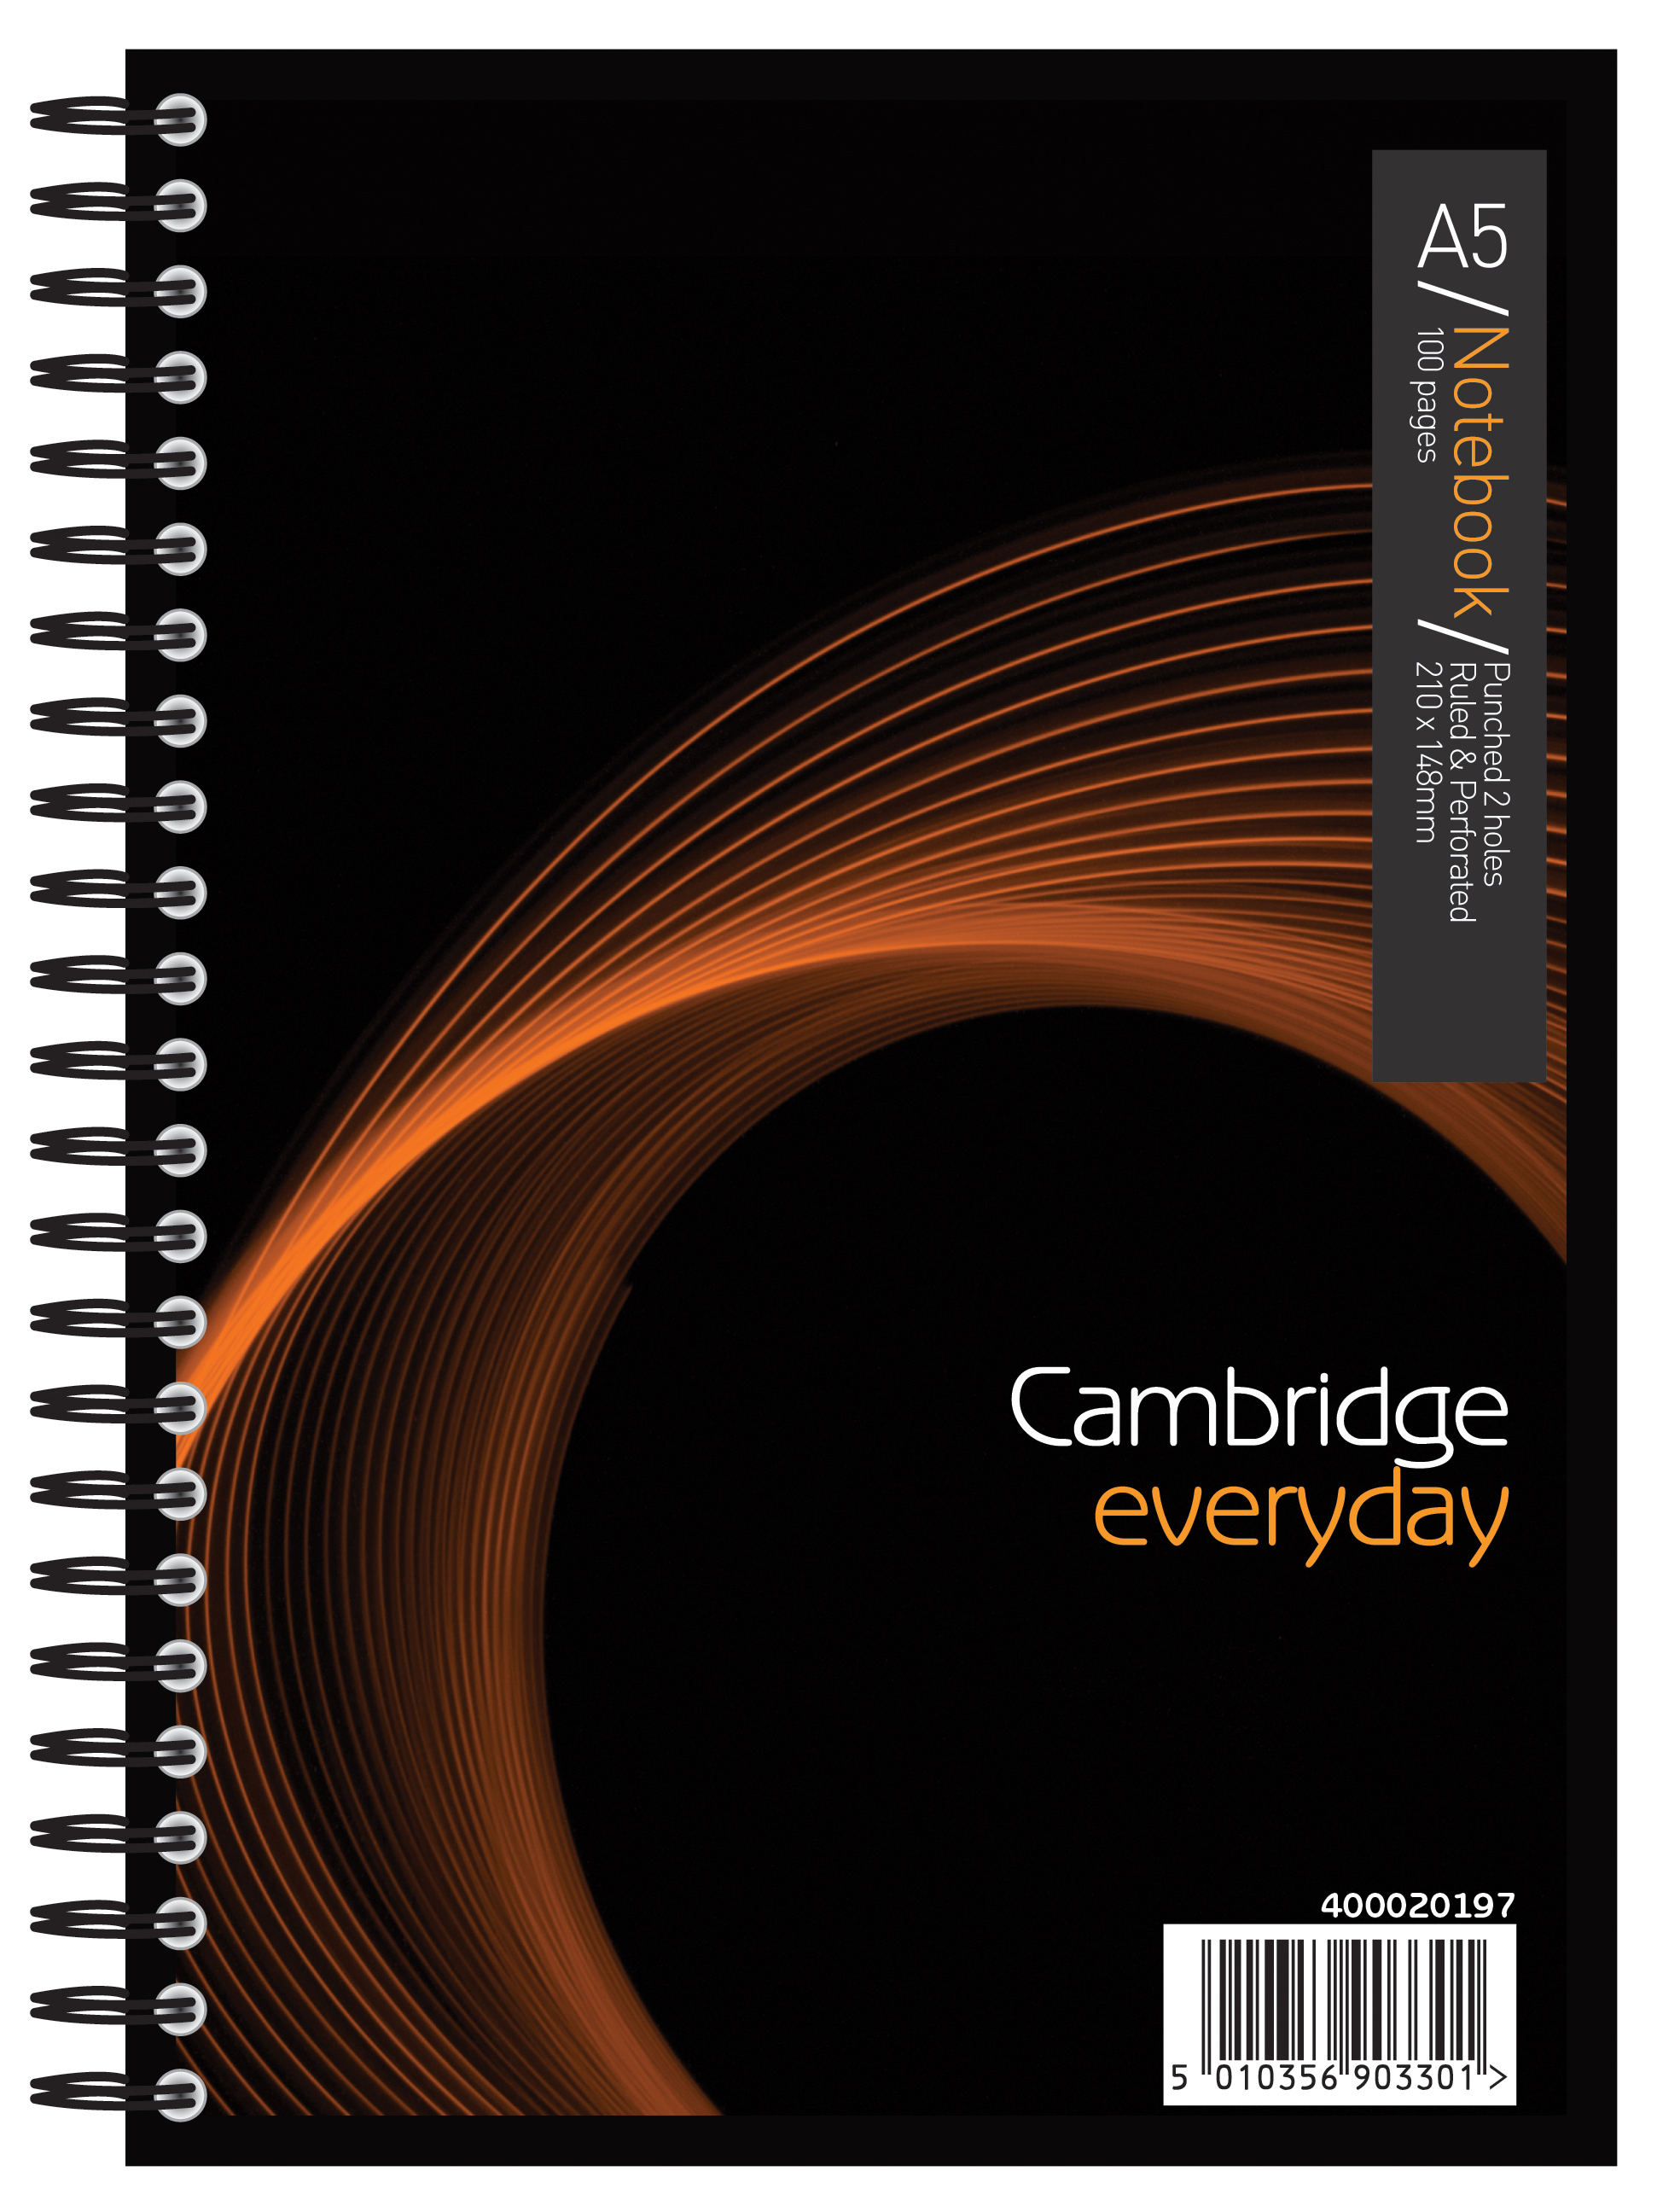 Cambridge EveryDay Notebook Wirebound 100 Pages 70gsm A5 Ref 400020197 [Pack 5]